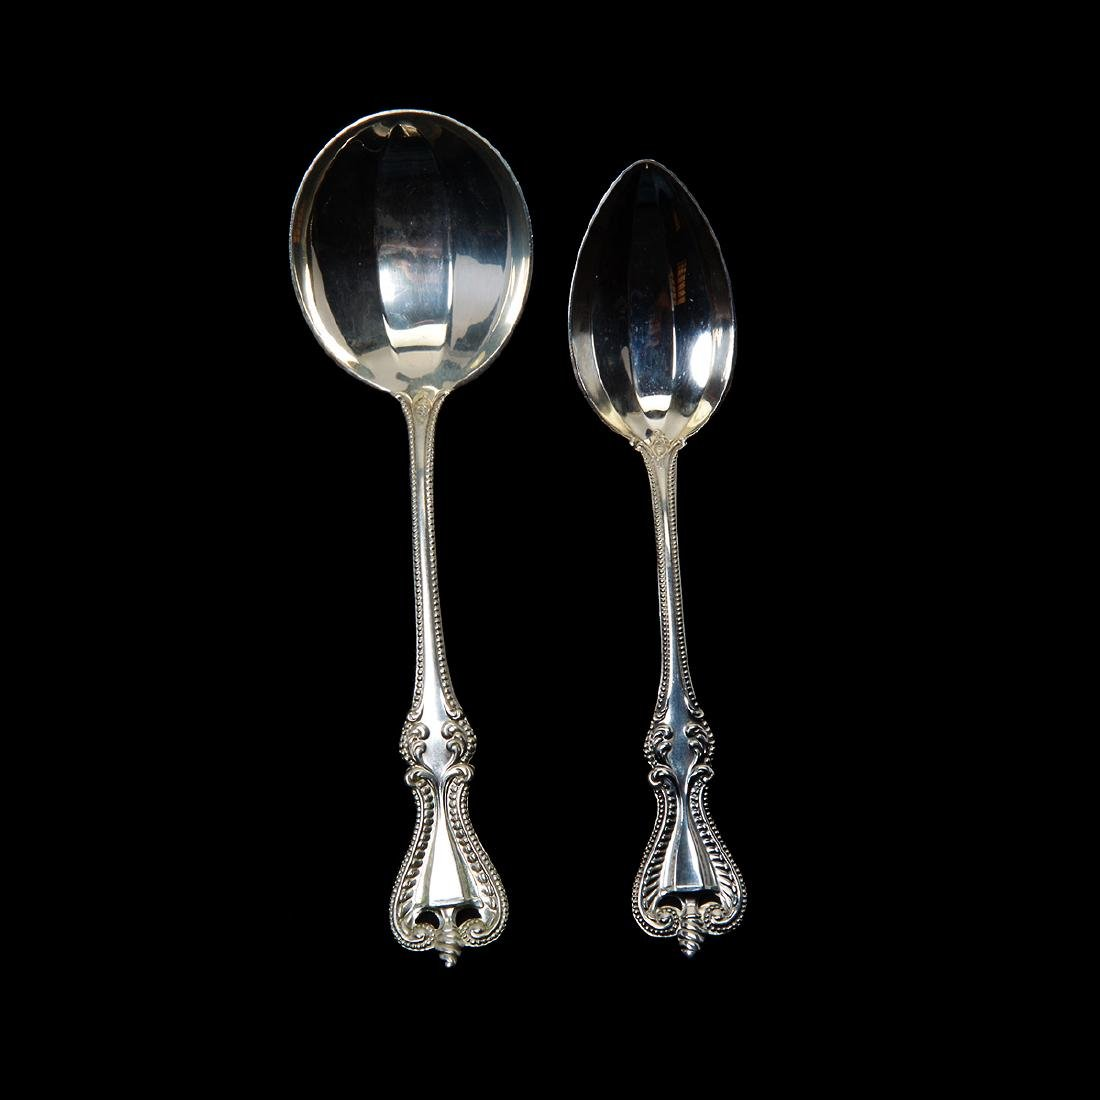 Towle Chippendale Sterling Flatware Set (72 Pieces) - 3